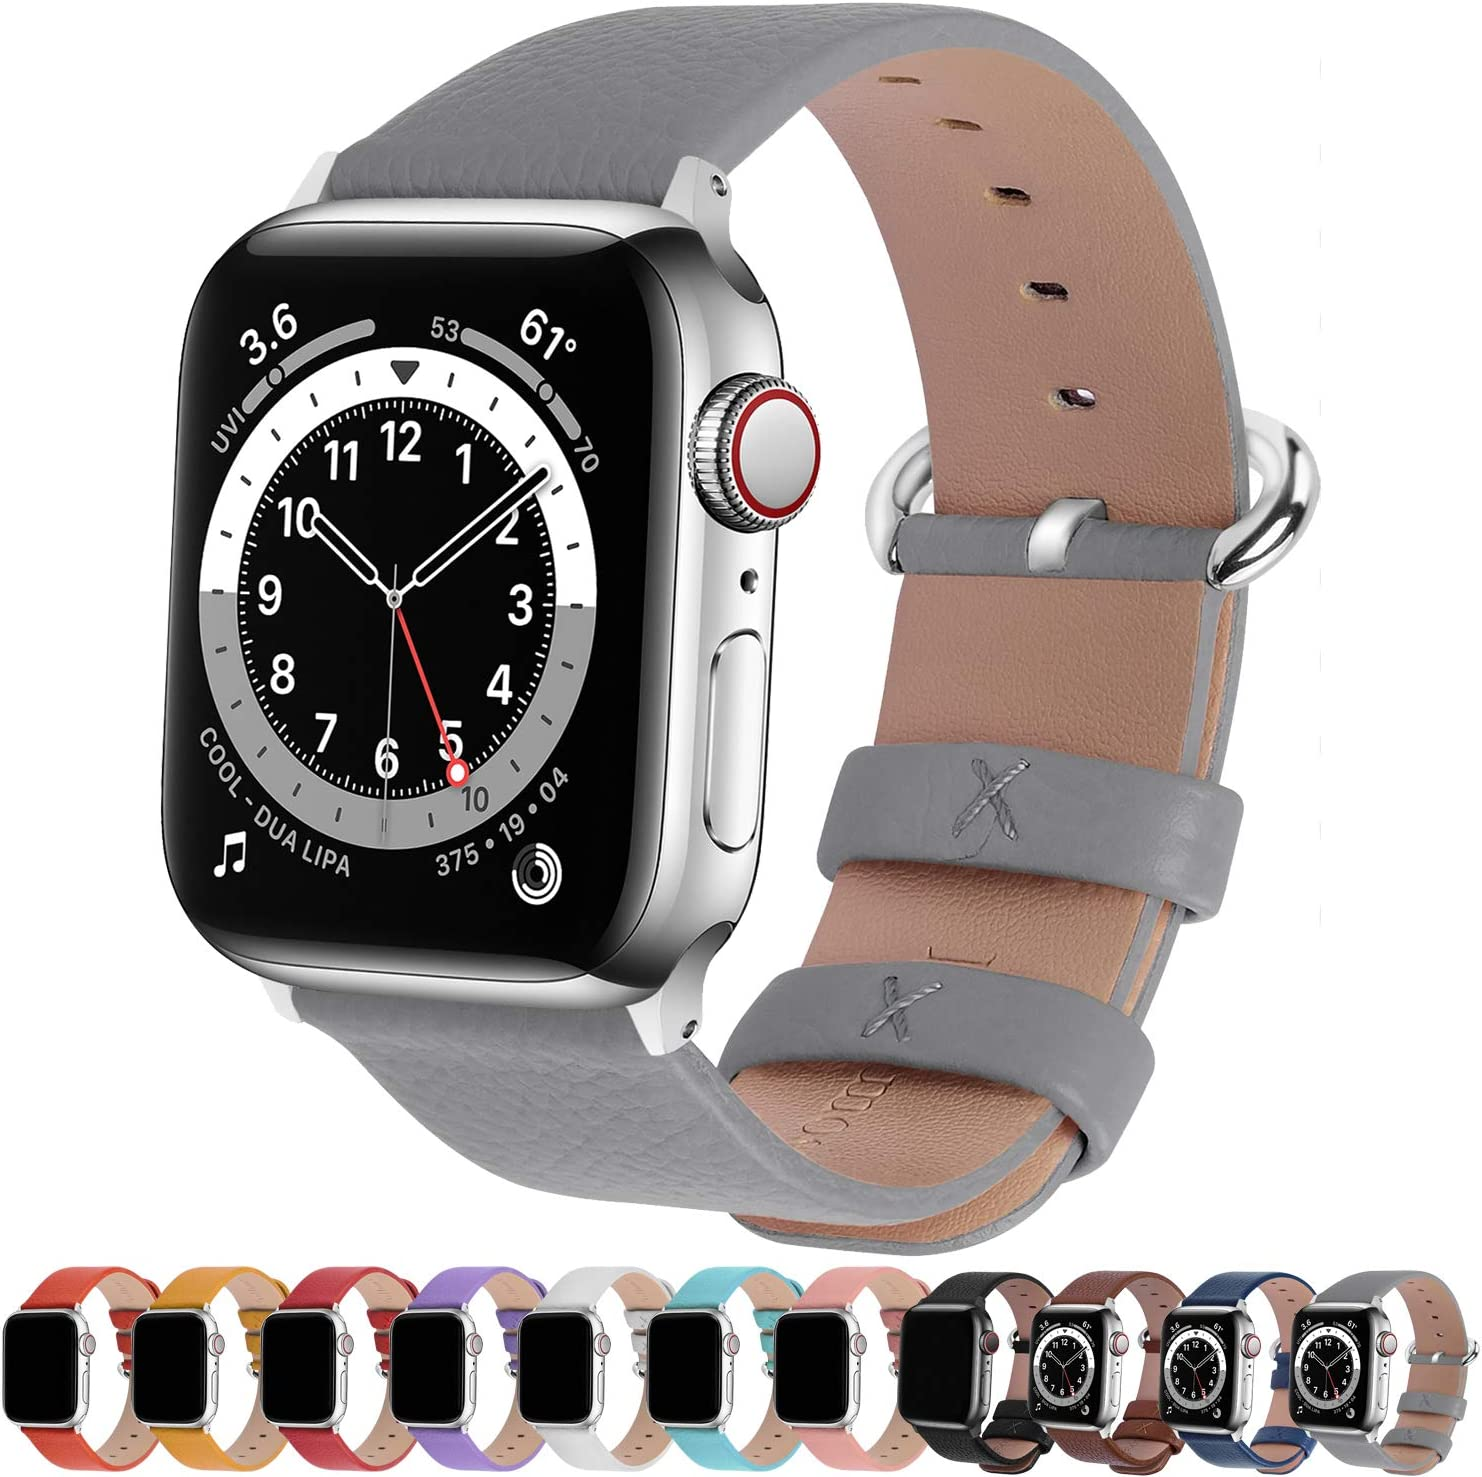 Fullmosa Compatible Apple Watch Band 38mm 40mm 42mm 44mm Leather Compatible iWatch Band/Strap Compatible Apple Watch SE & Series 6 5 4 3 2 1, 42mm 44mm Grey + Silver Buckle